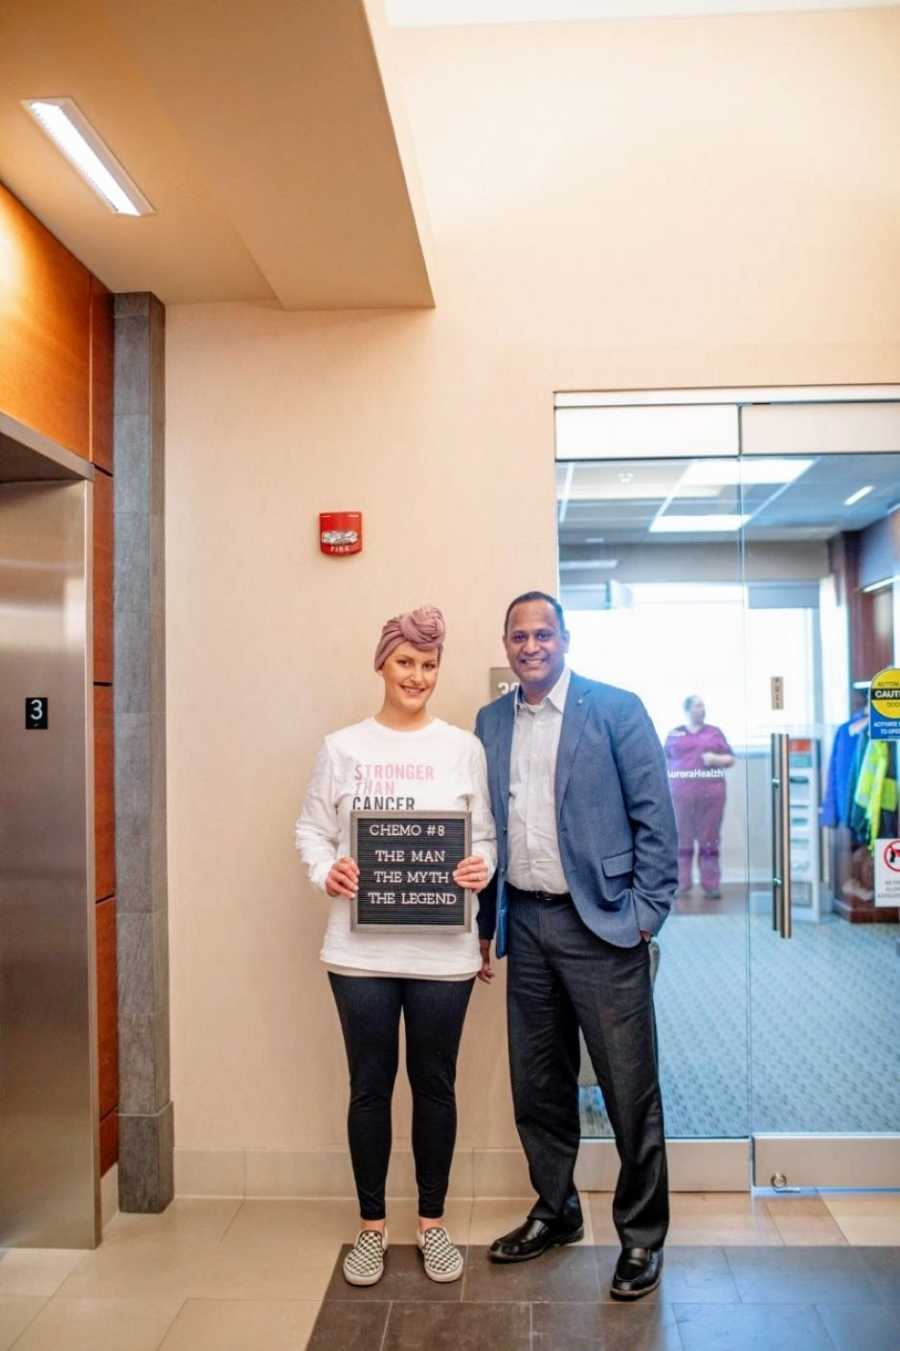 """Woman with triple negative breast cancer takes a photo with her doctor with a sign that reads """"the man, the myth, the legend"""""""